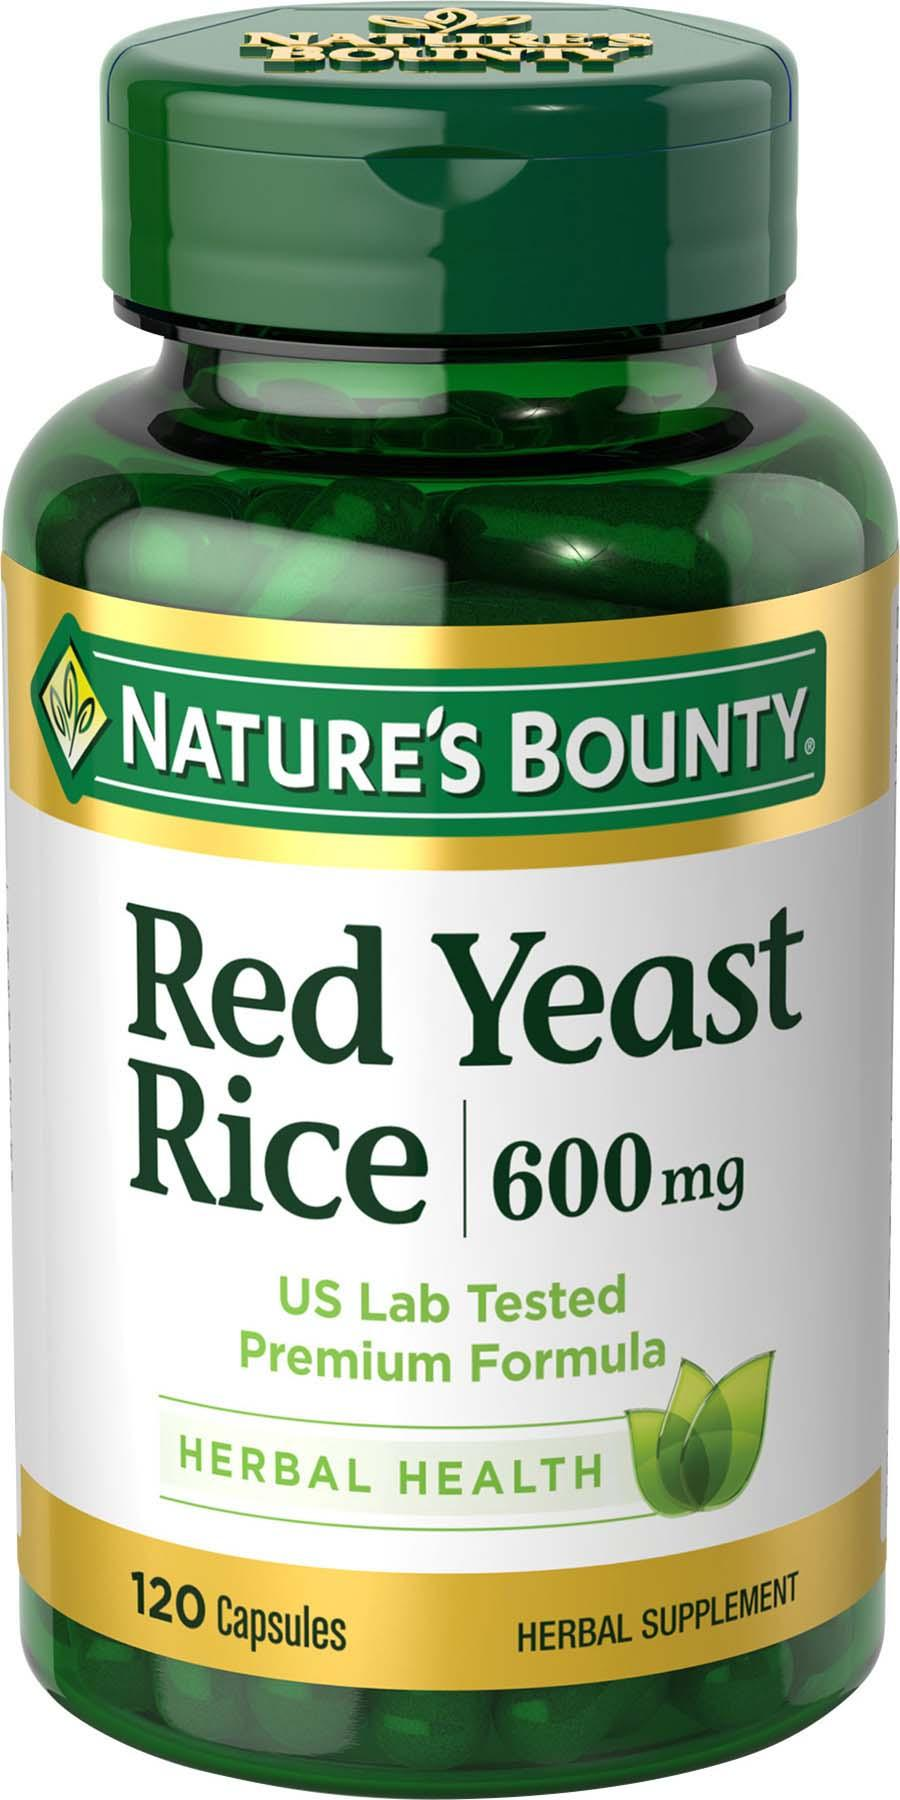 Amazon.com: Nature's Bounty Red Yeast Rice 600 mg, 120